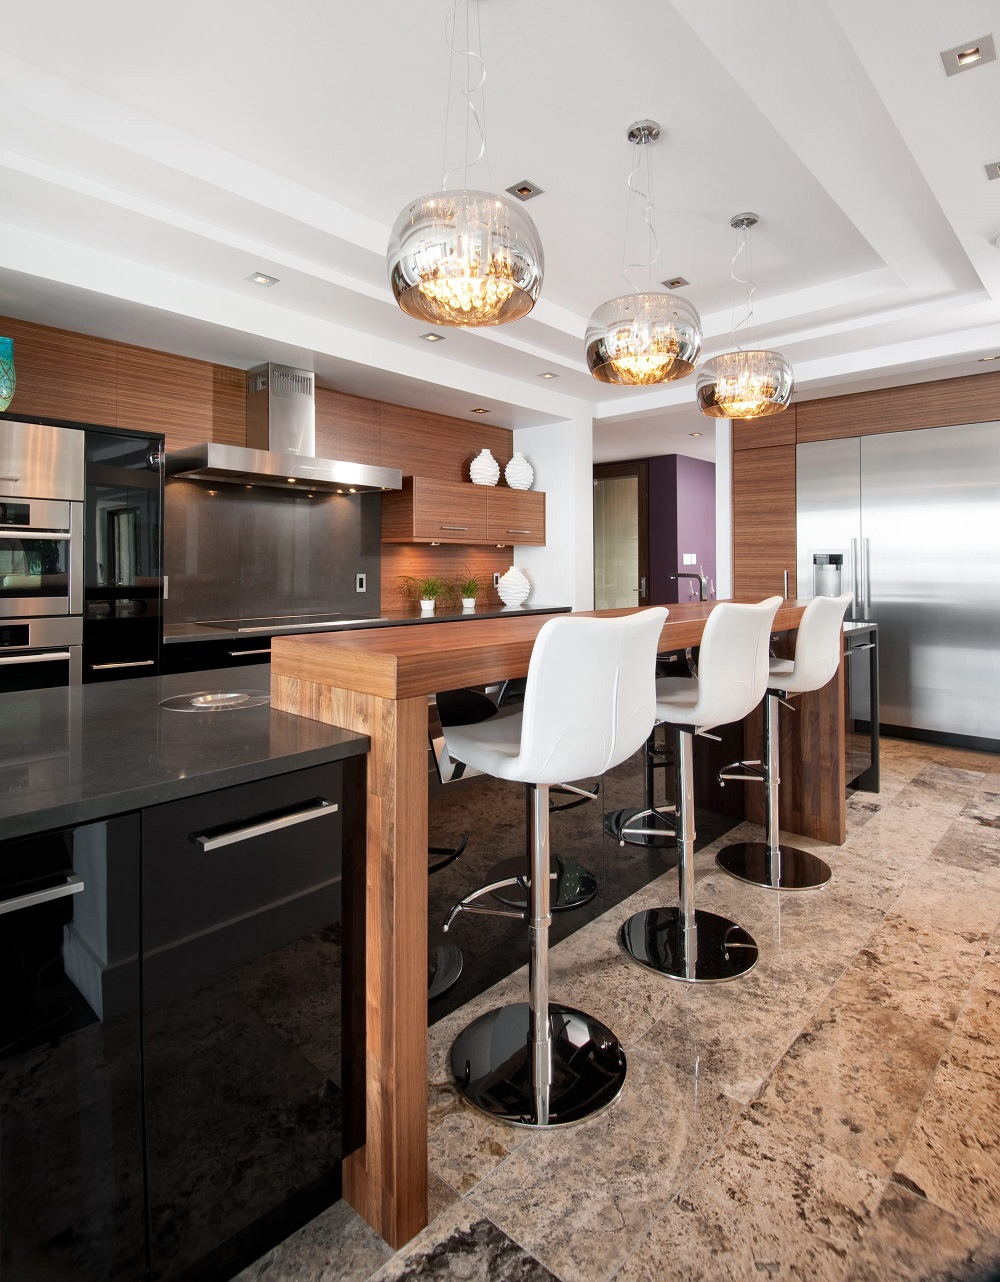 t3-6 Great ideas for recessed ceiling lights that could inspire you